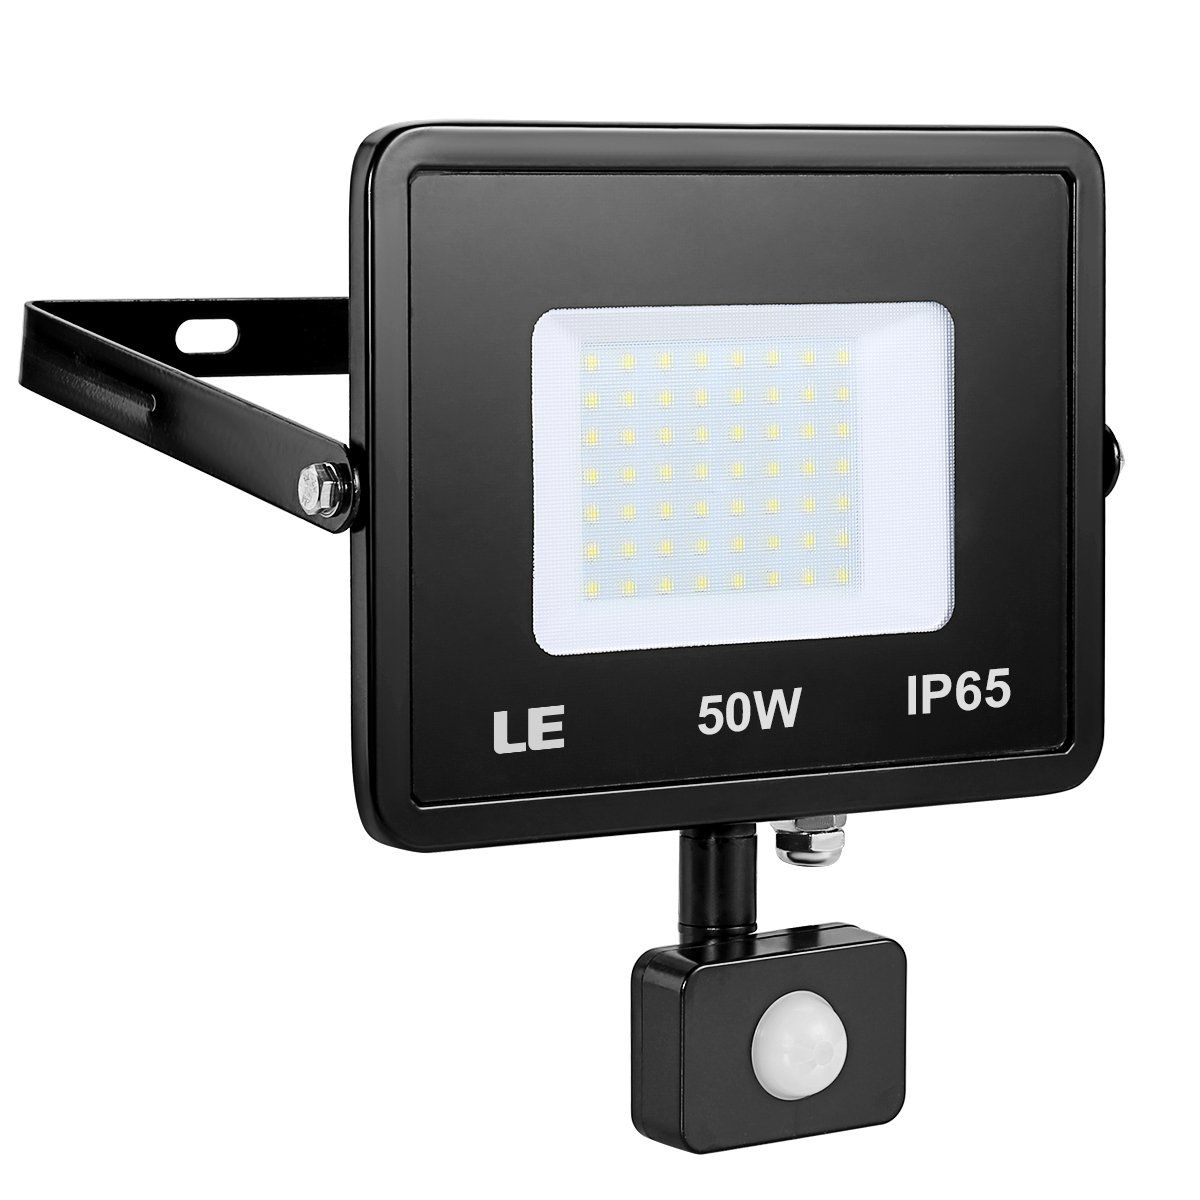 Outdoor Led Motion Lights Magnificent Le 50W Motion Sensor Flood Light 4000Lm Outdoor Led Flood Lights Decorating Inspiration